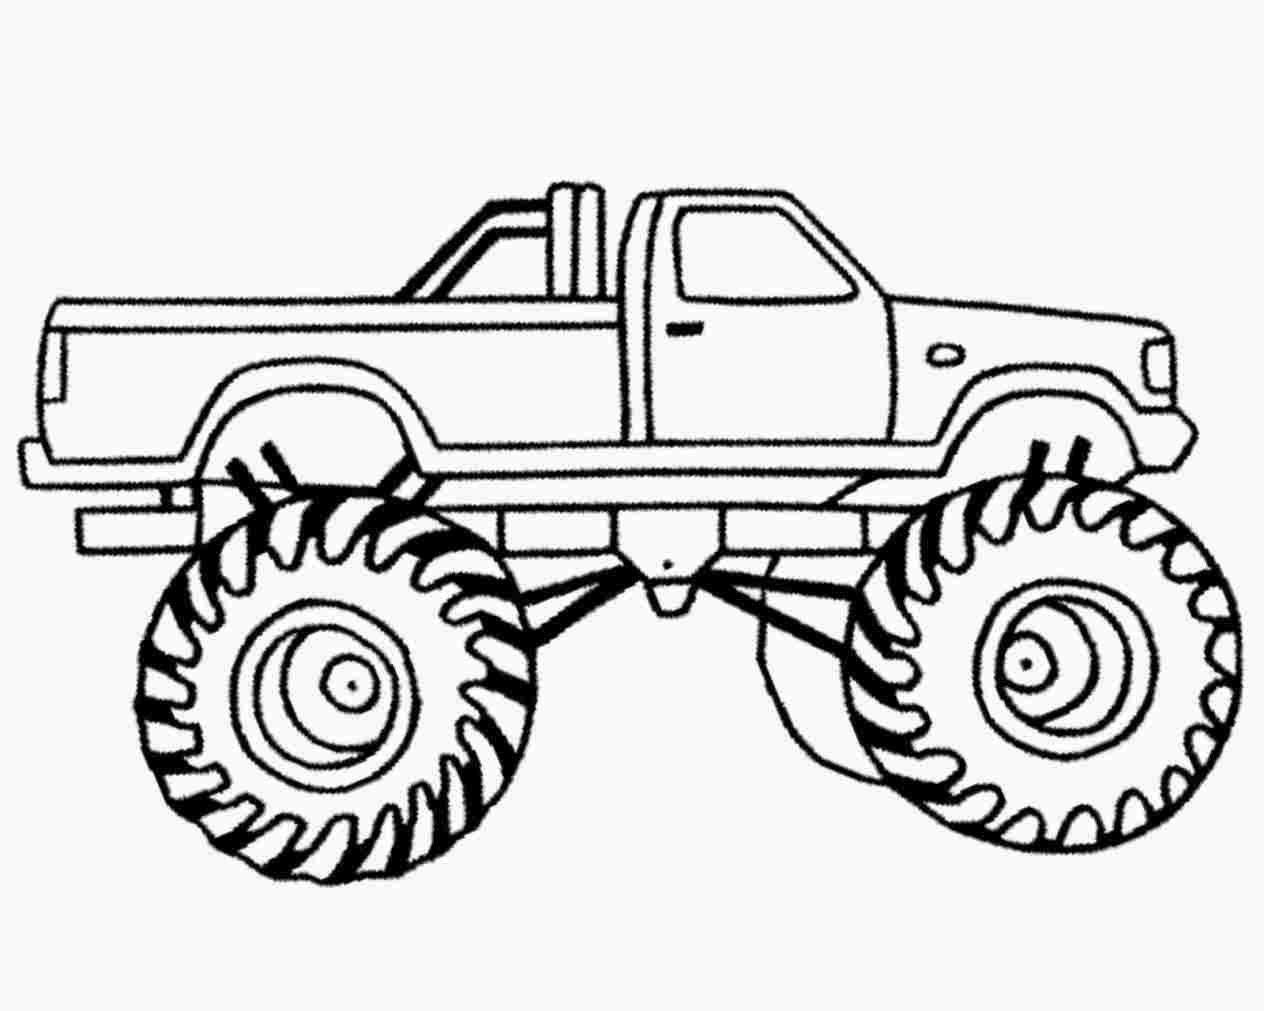 monster truck coloring pages easy pickup truck outline drawing at getdrawings free download coloring monster easy truck pages